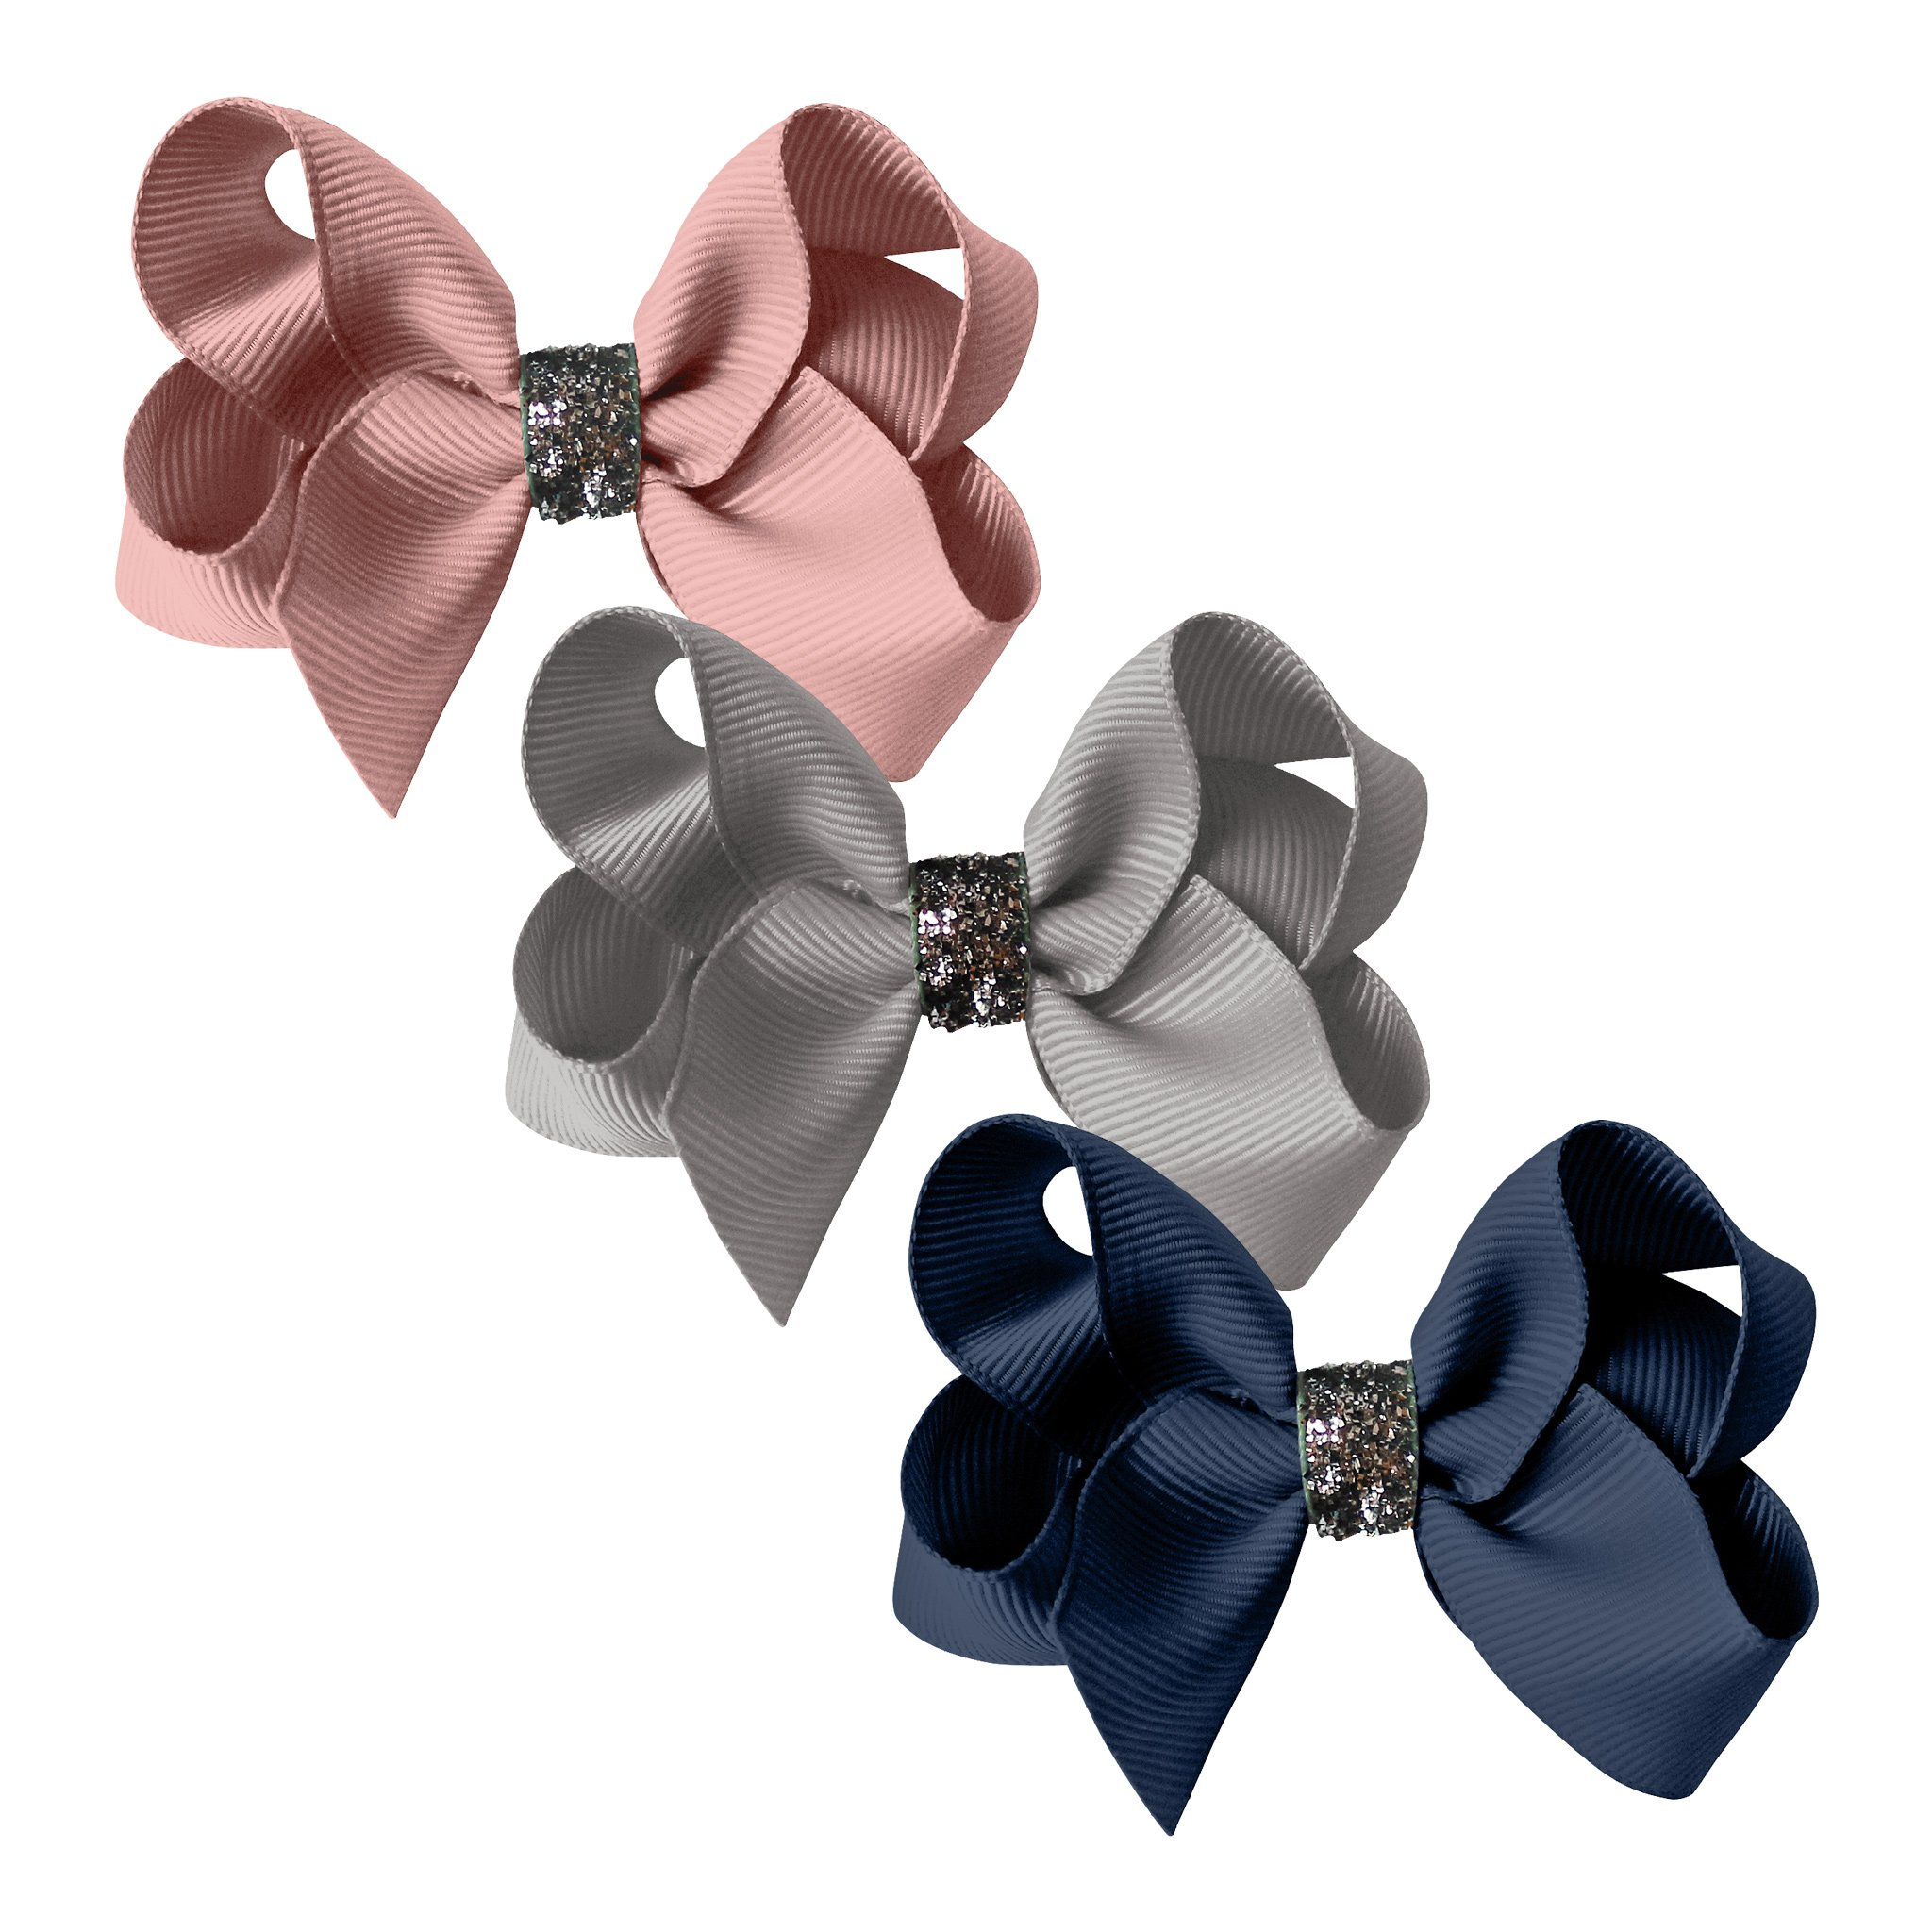 Image of Milledeux gift set - Glitter Collection - 3 Medium boutique bows mauve/grey/navy